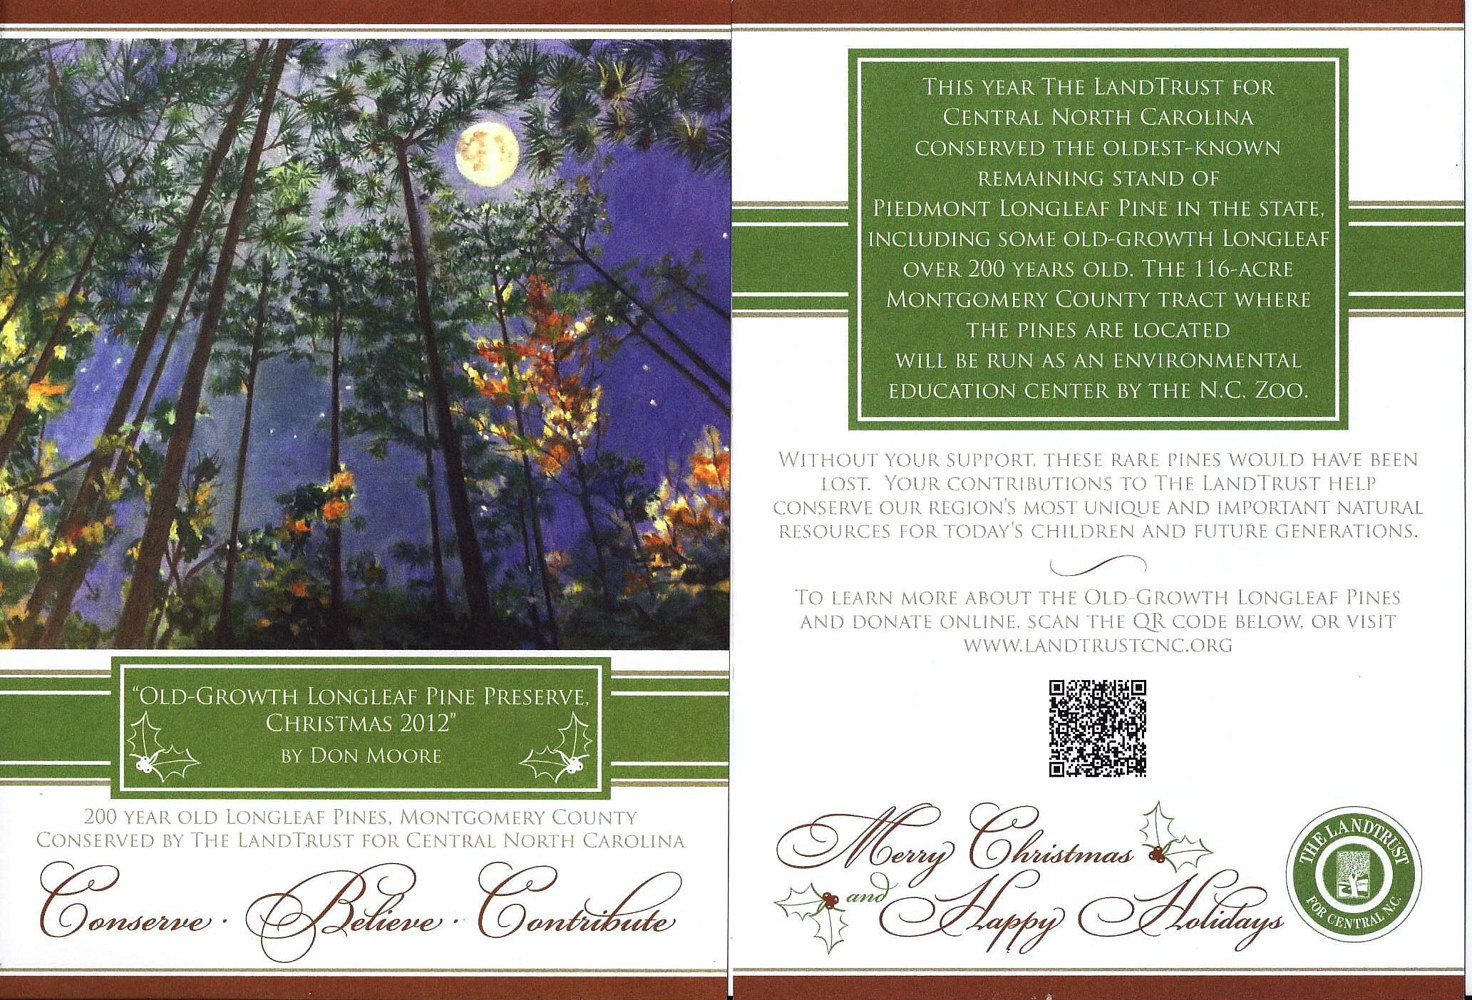 NC Land Trust Xmas Card - 2012 by Don Moore